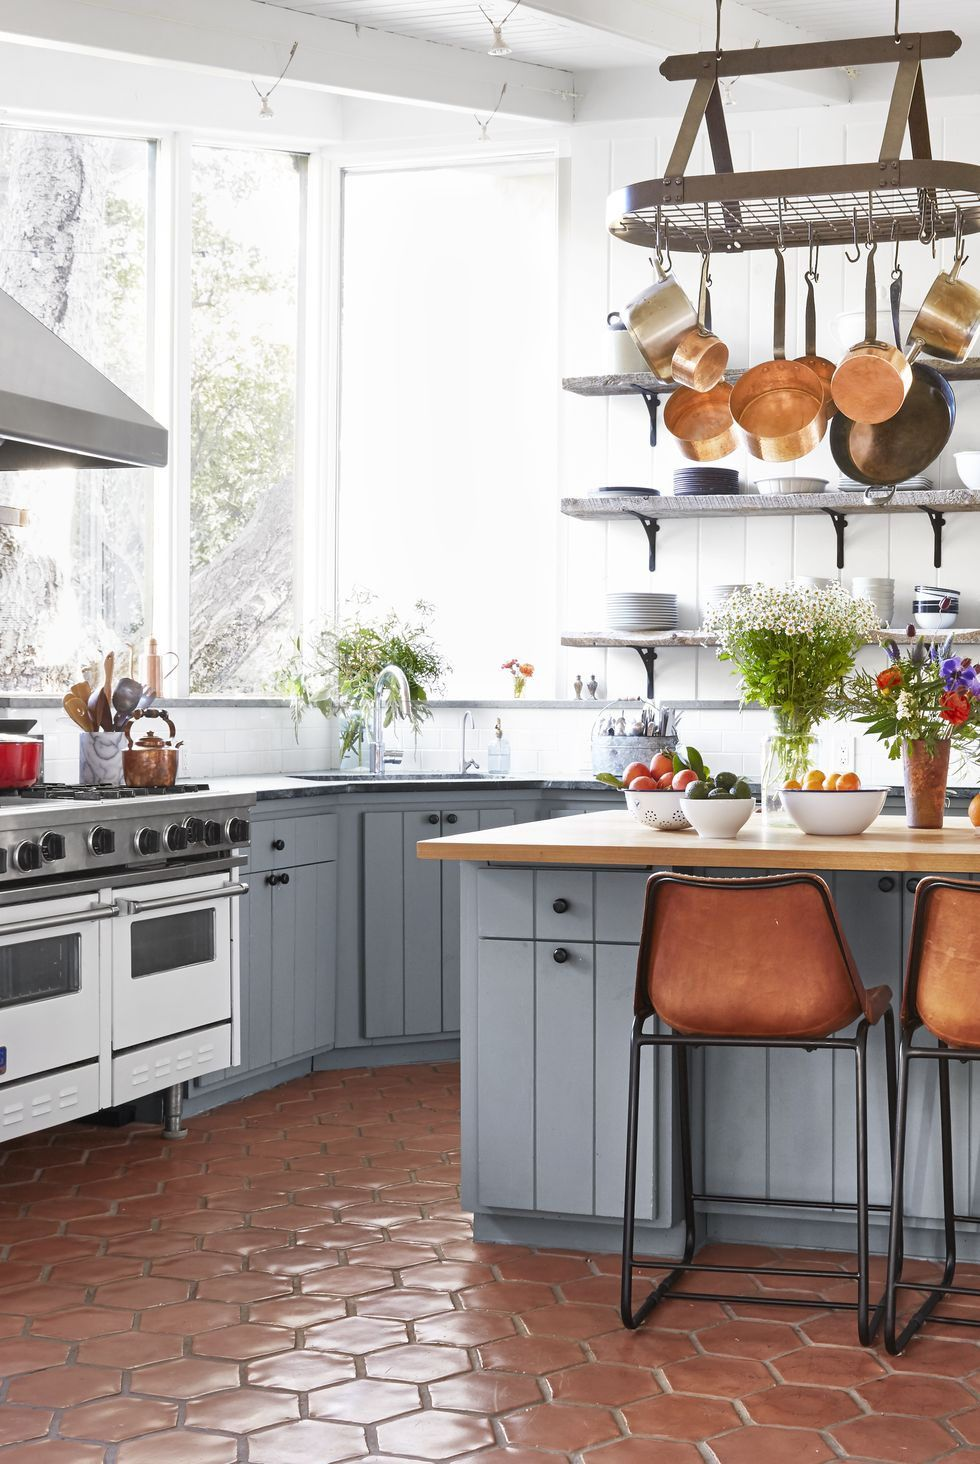 90 kitchens that ll make you want to redo yours in 2020 on kitchens that ll make you want to redo yours id=95790